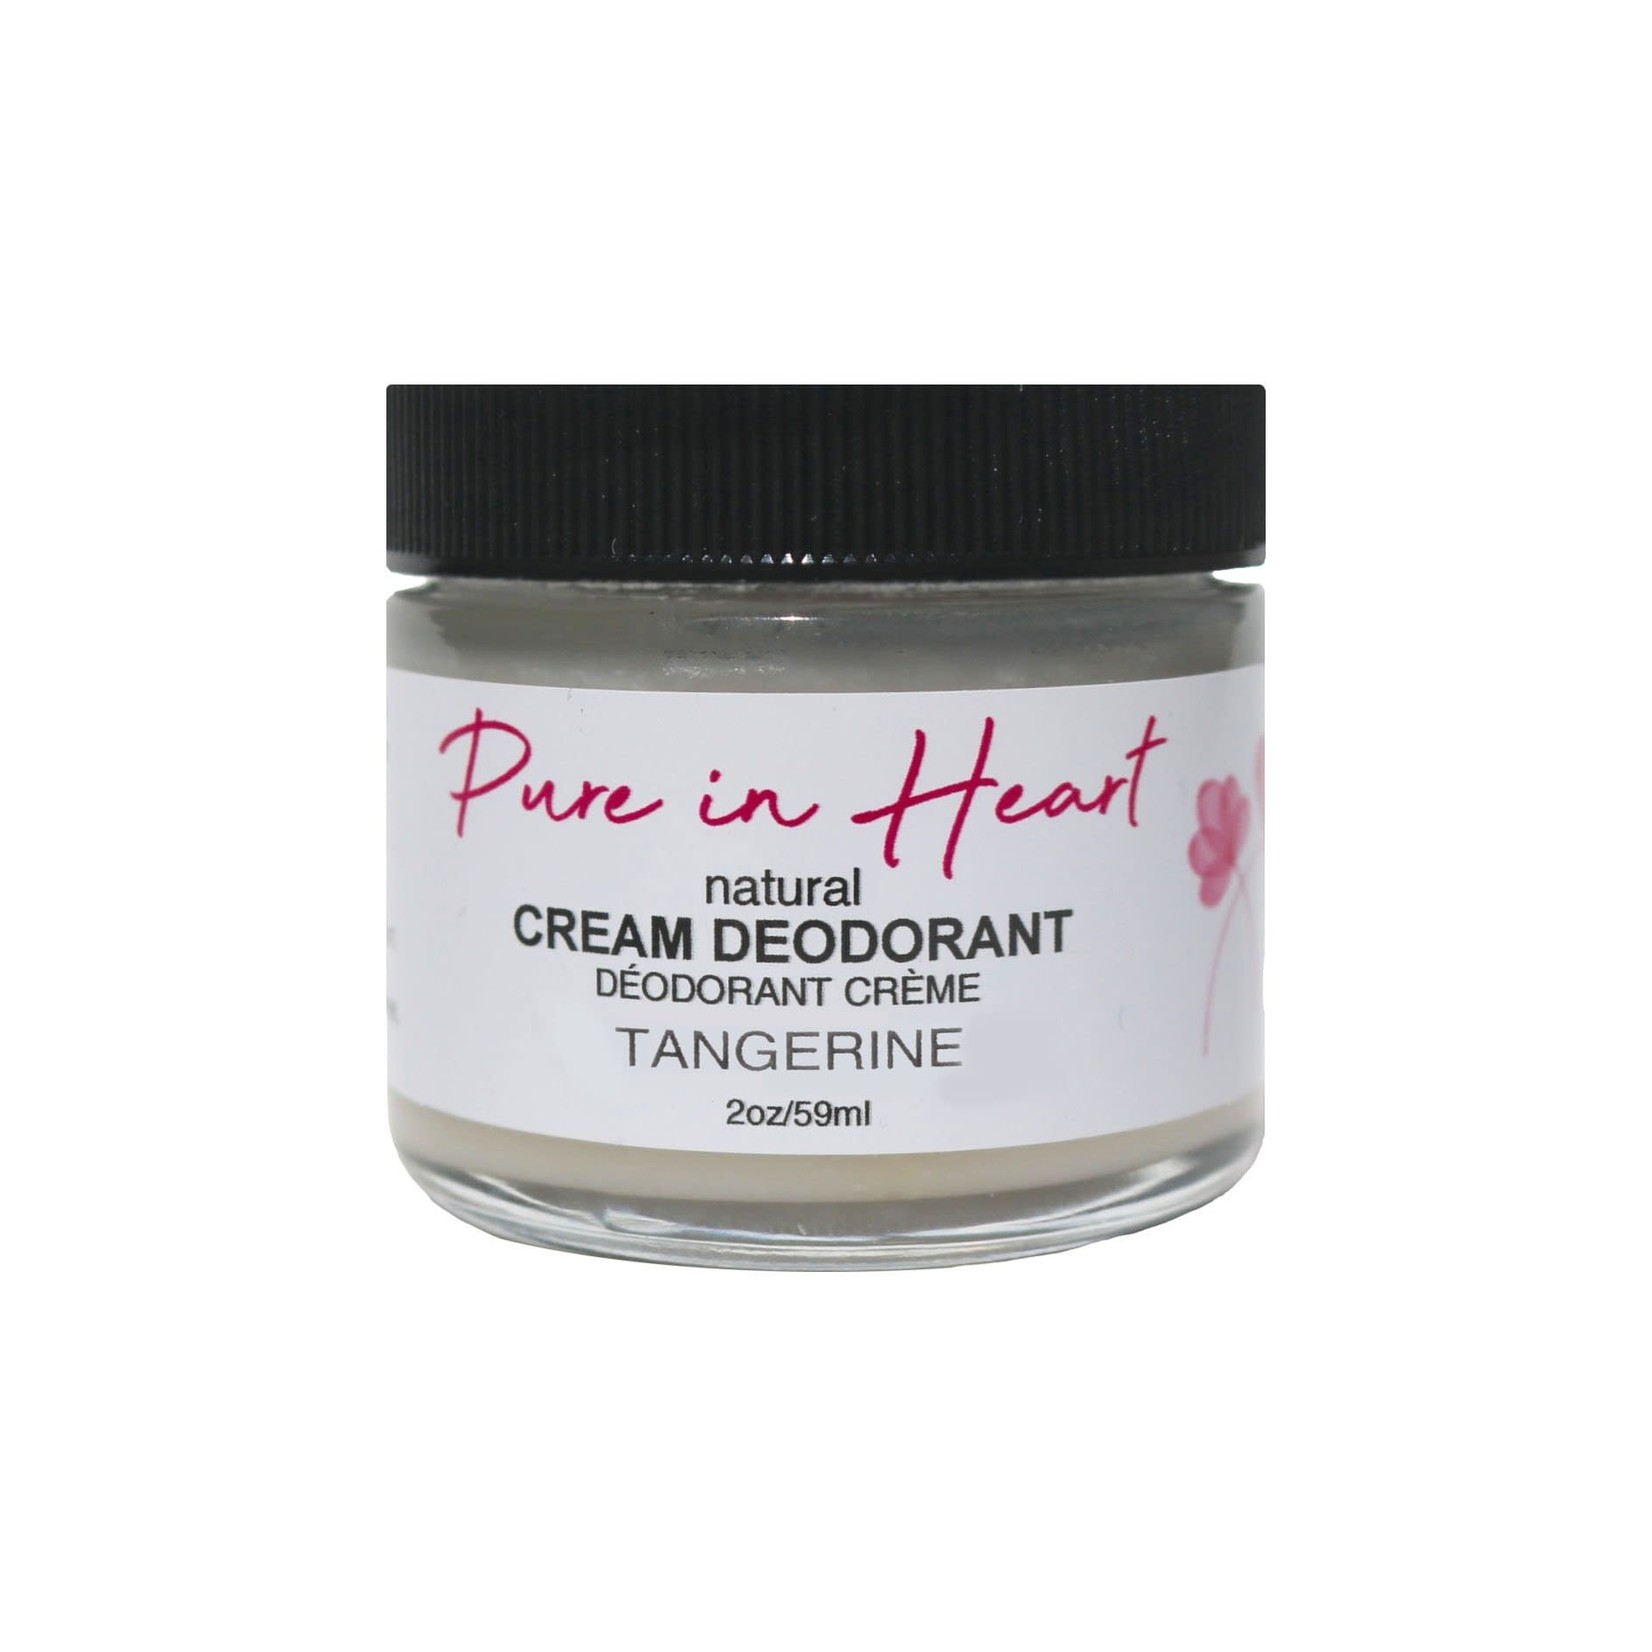 Pure in Heart Pure in Heart Natural Cream Deodorant